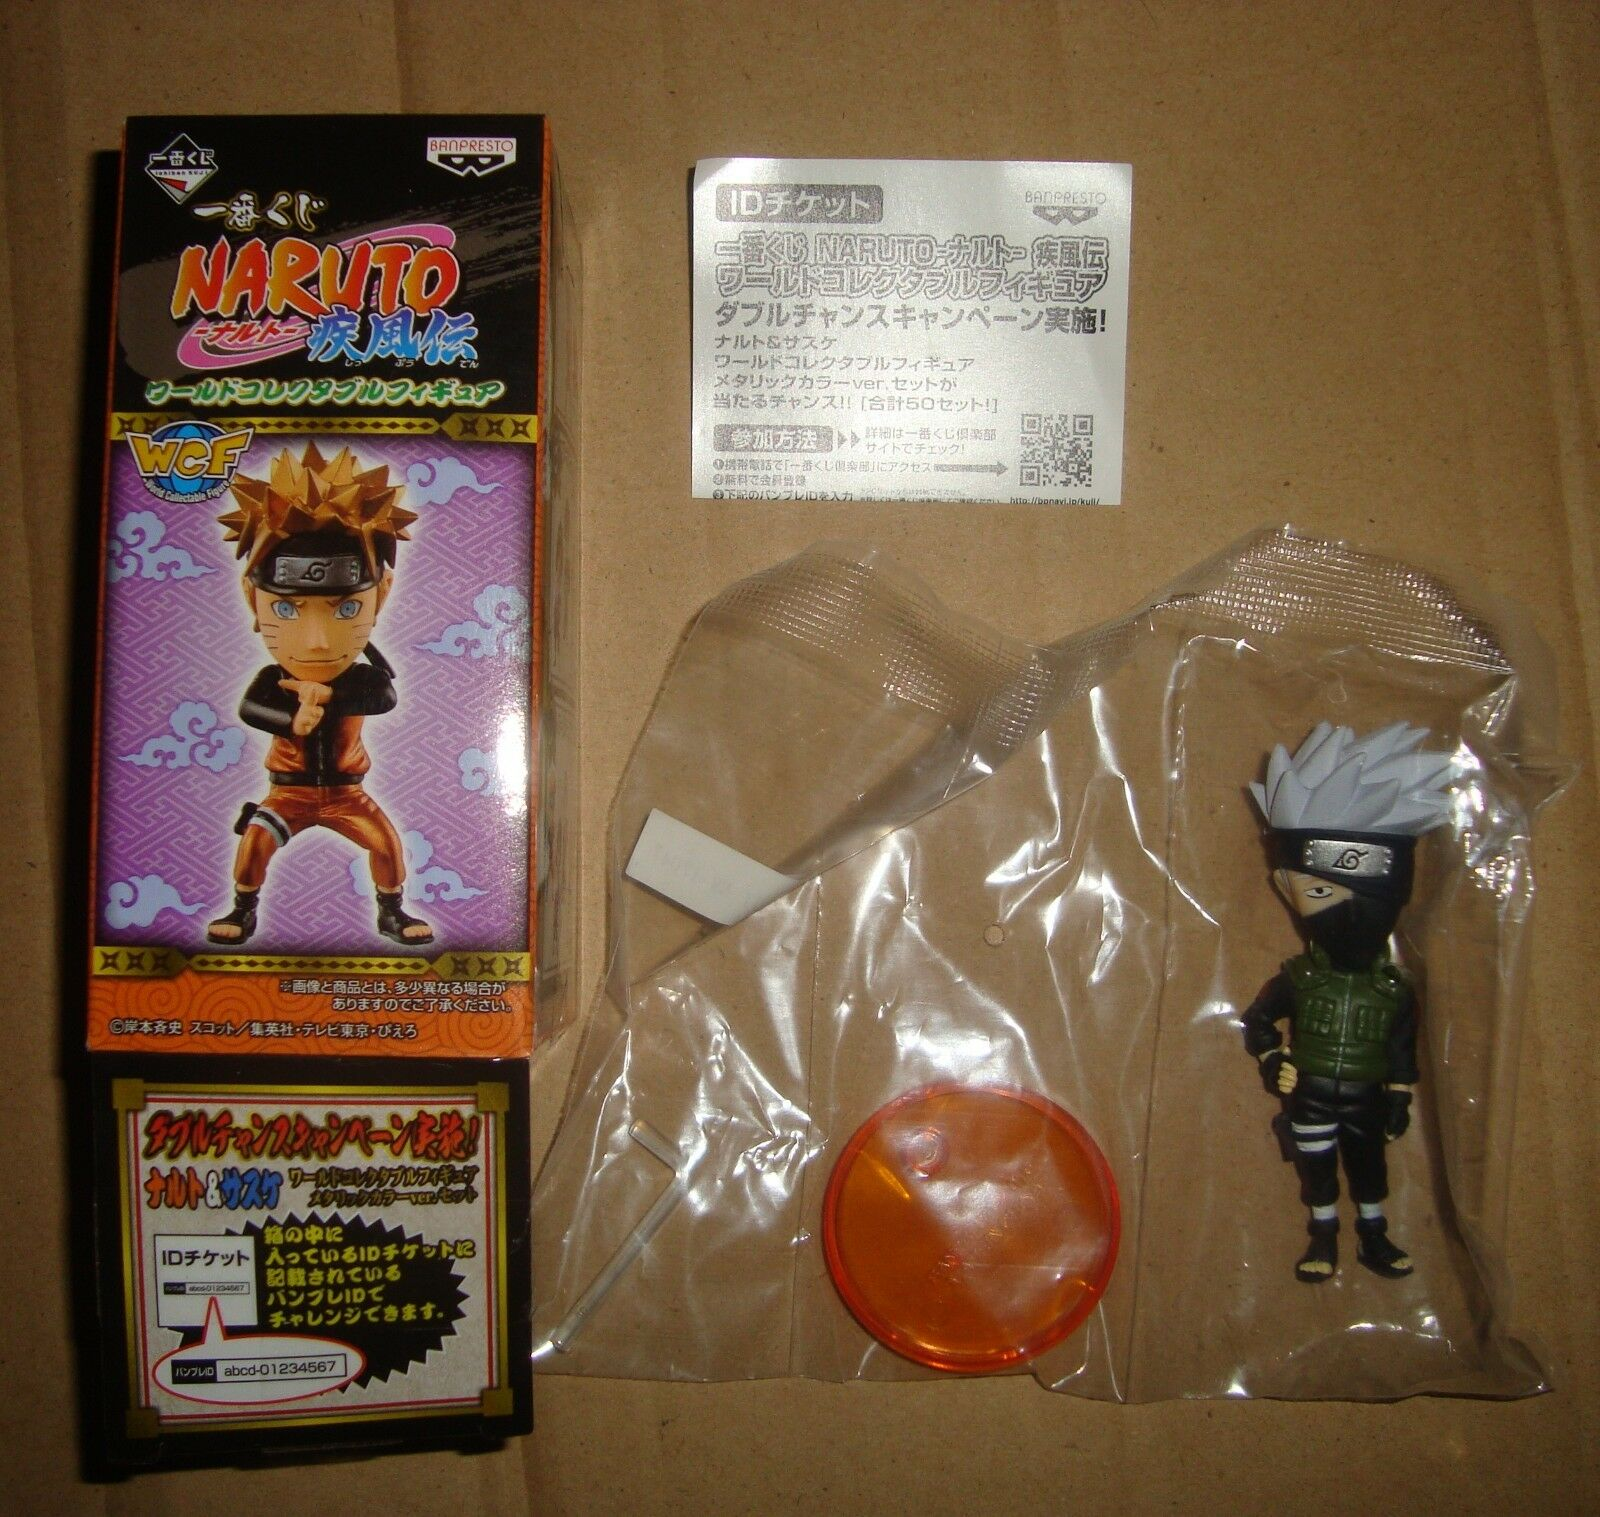 NARUTO WCF WORLD COLLECTIBLE FIGURE NORMAL VERSION SET COMPLETO BANPRESTO BANPRESTO BANPRESTO 2016 92f3a0